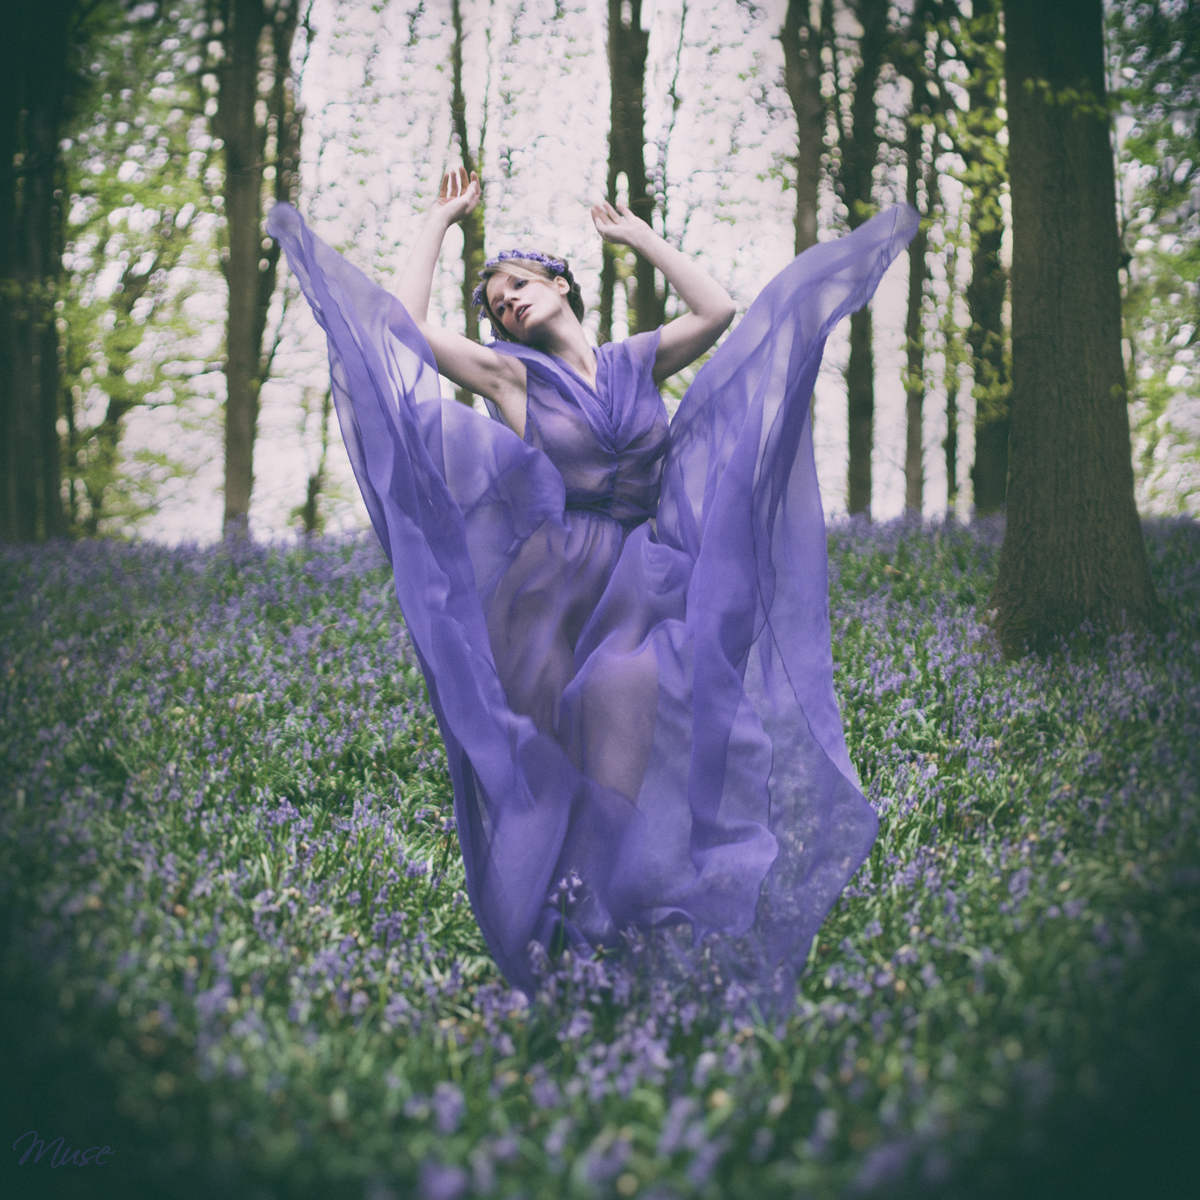 Dance of the bluebell by Muse1908